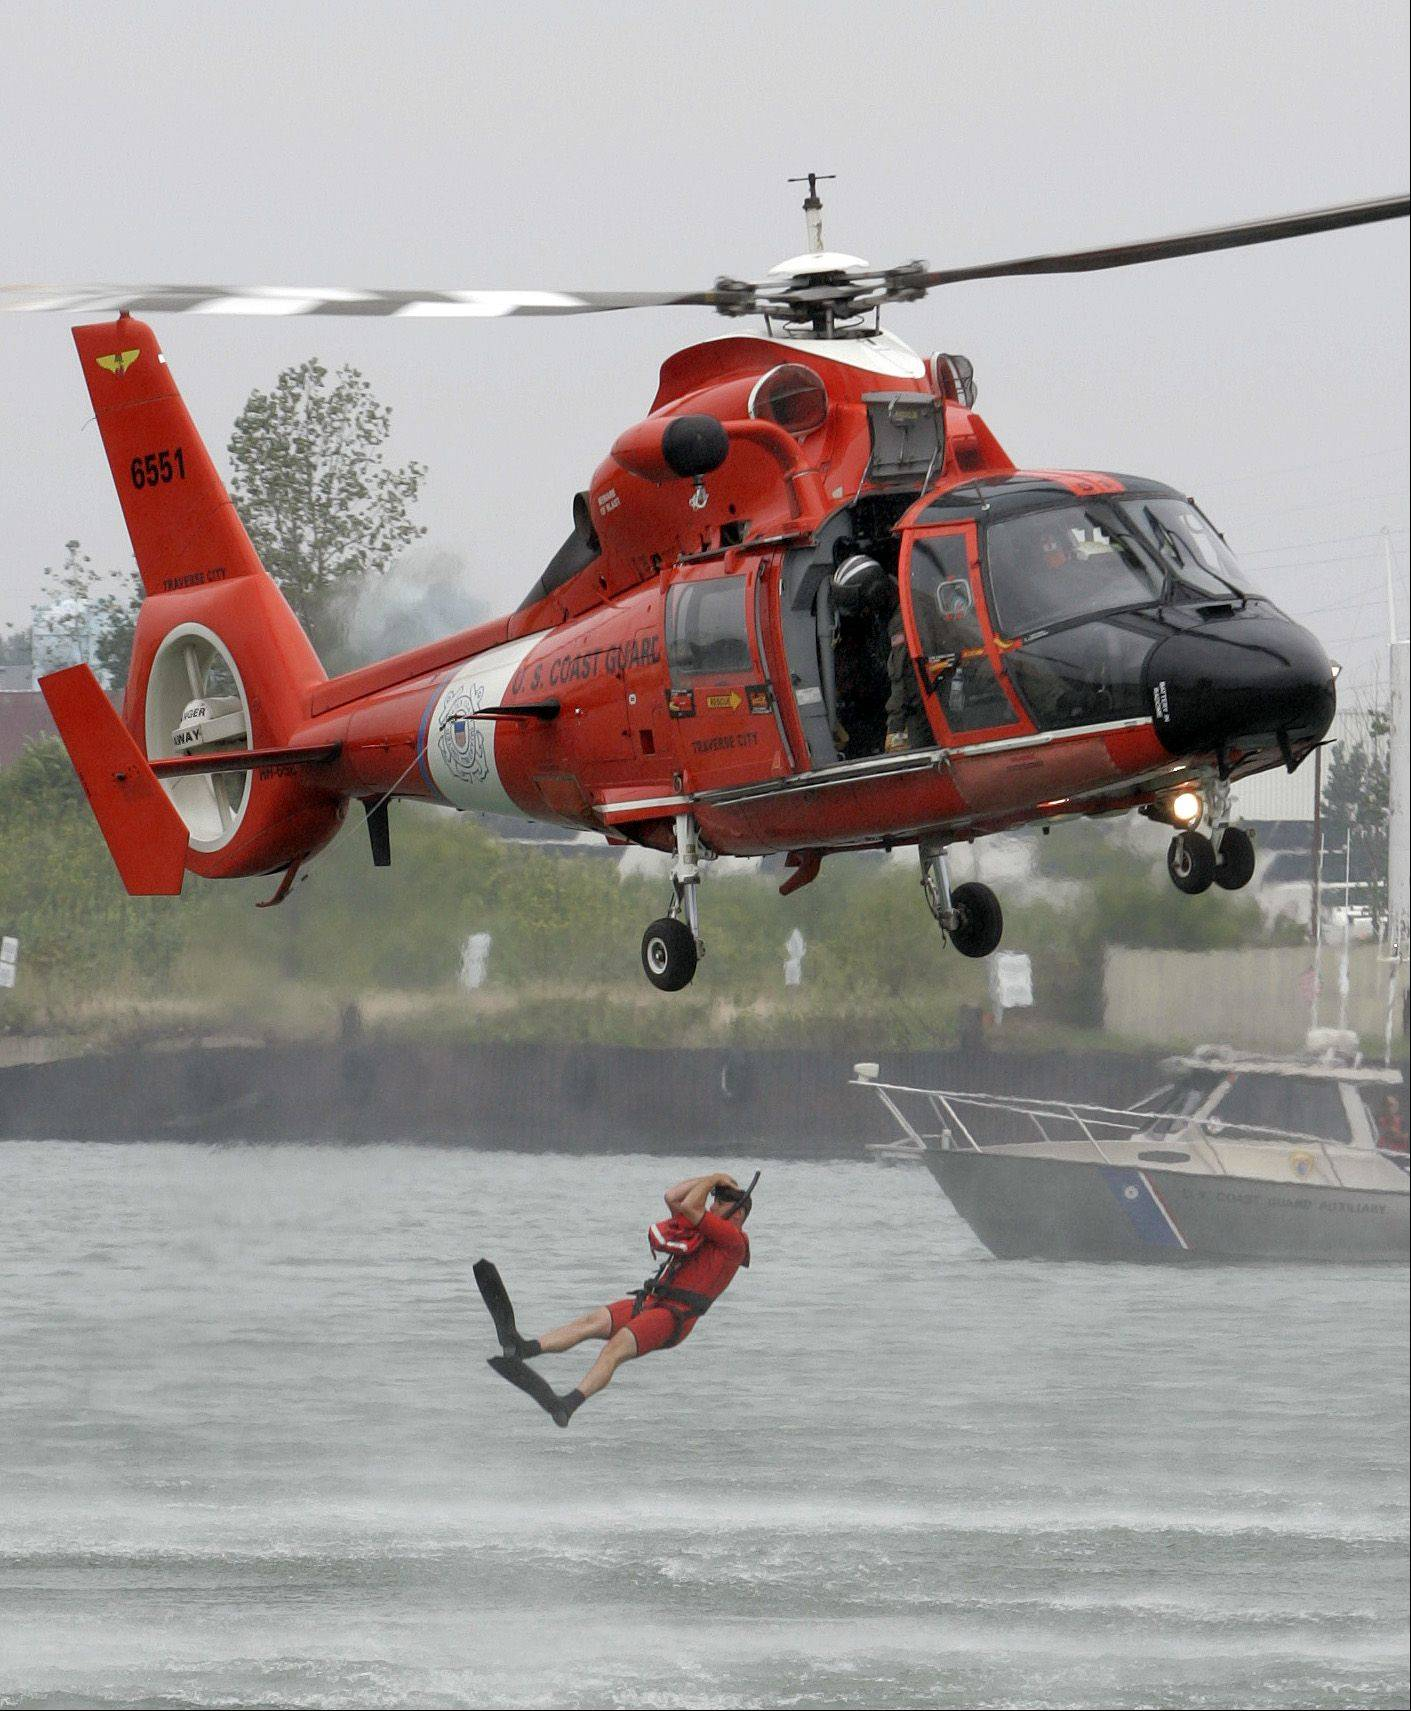 The U.S. Coast Guard performs a water rescue demonstration off Waukegan Harbor.